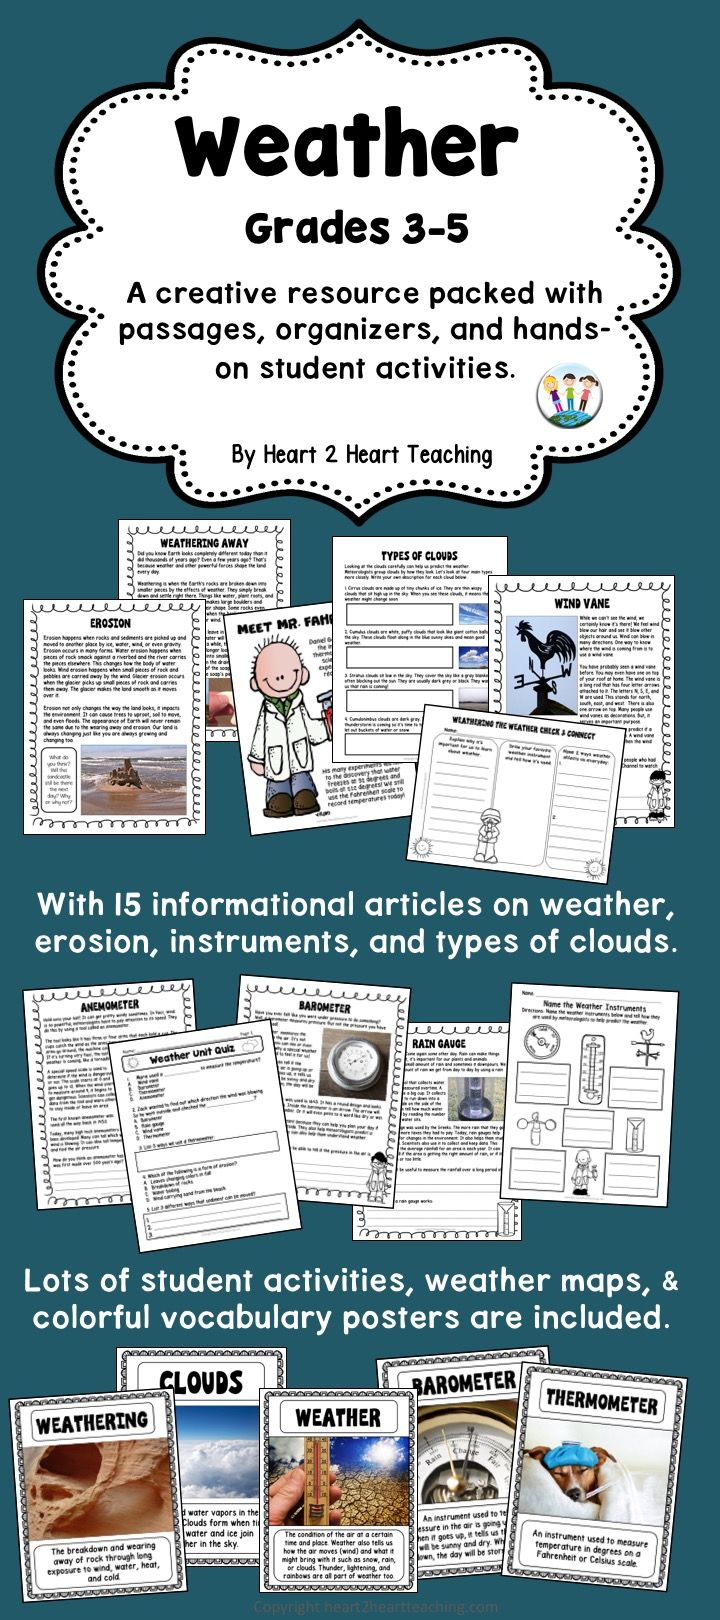 Types Of Weather Instruments : Best images about work stuff on pinterest cut and